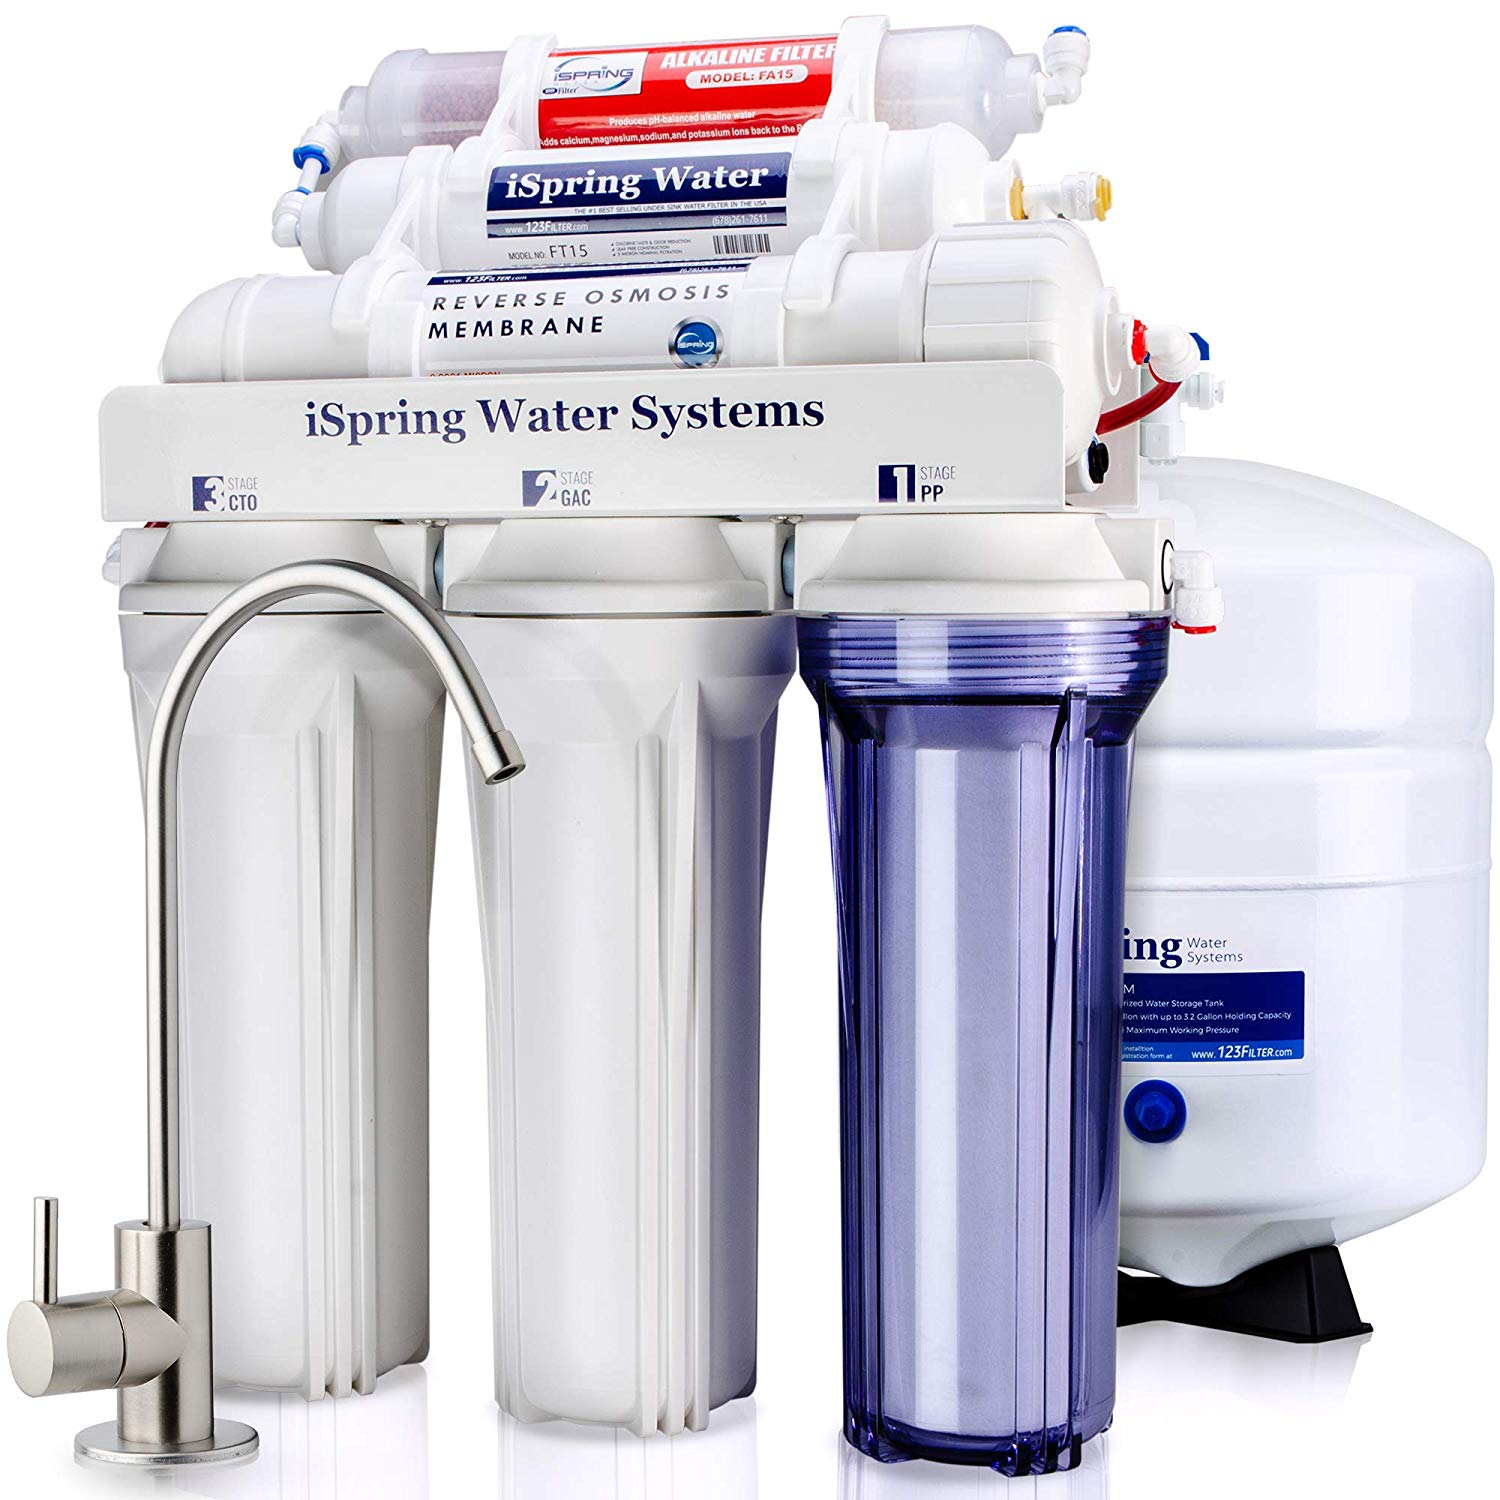 iSpring RCC7AK 6-Stage Reverse Osmosis Drinking Water Filter with Alkaline Remineralization